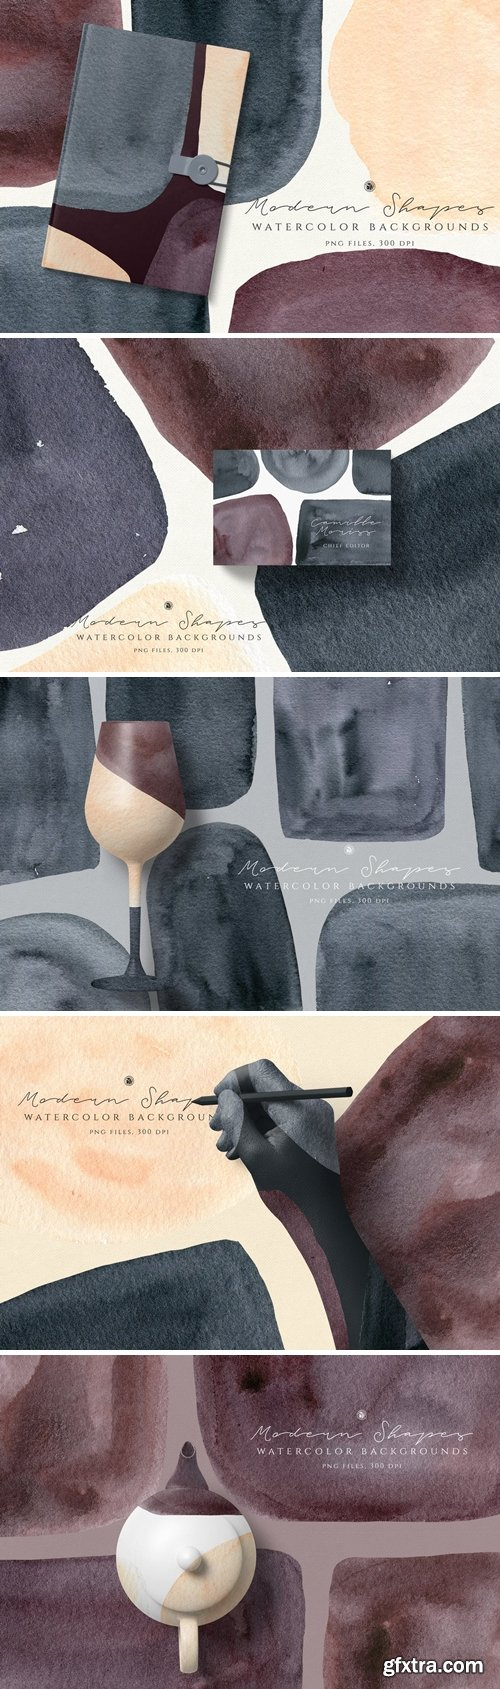 CM - Watercolor Backgrounds Modern Shapes 3774404